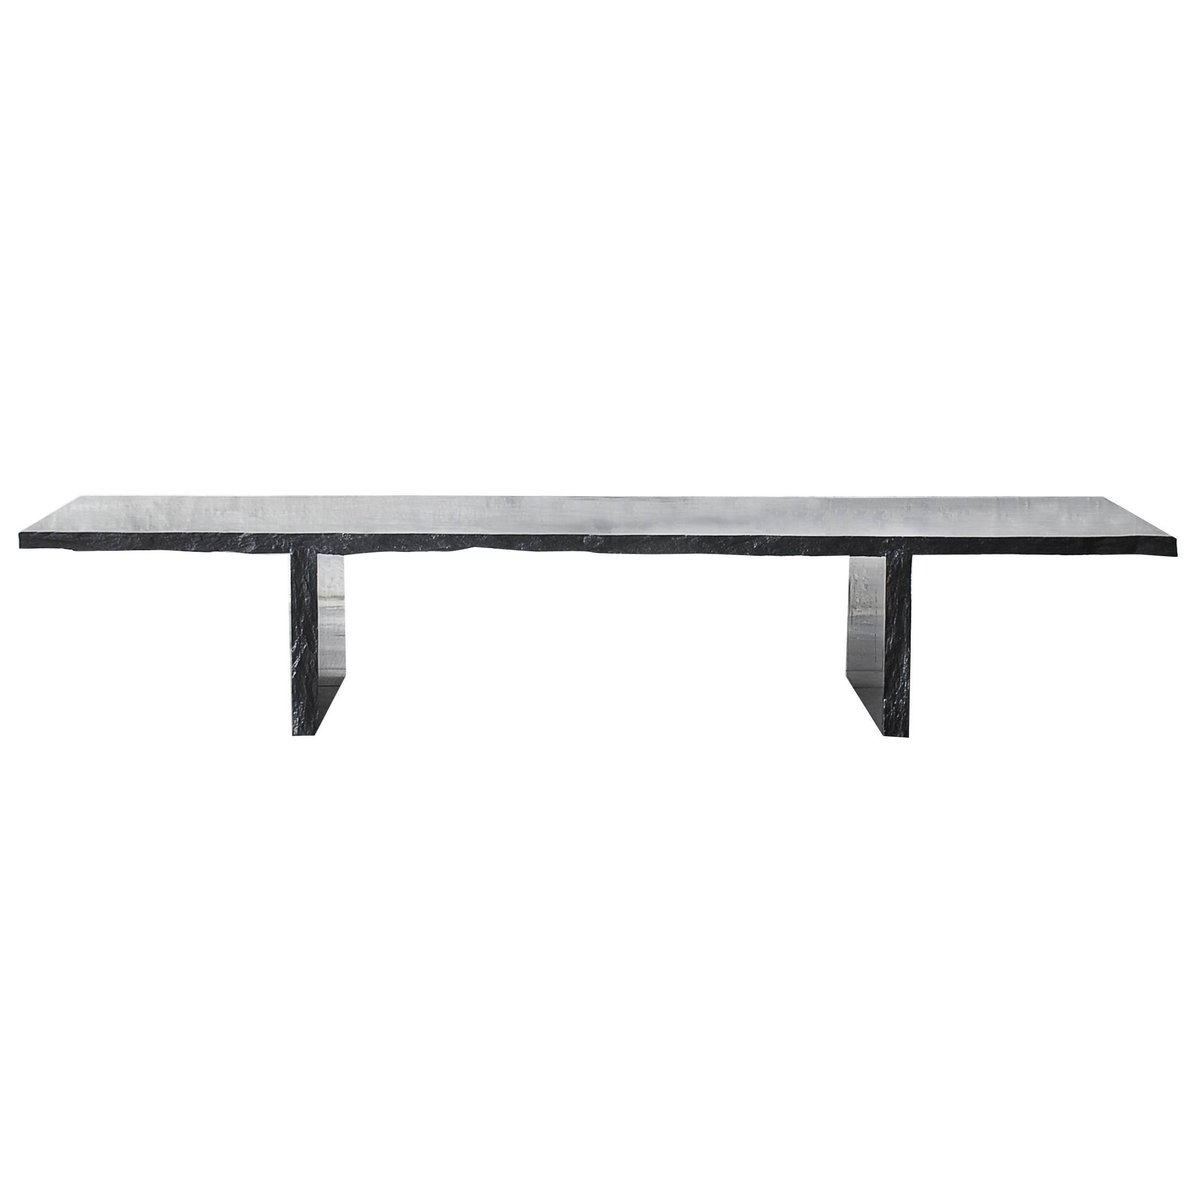 Fruste Coffee Table by Fre?de?ric Saulou